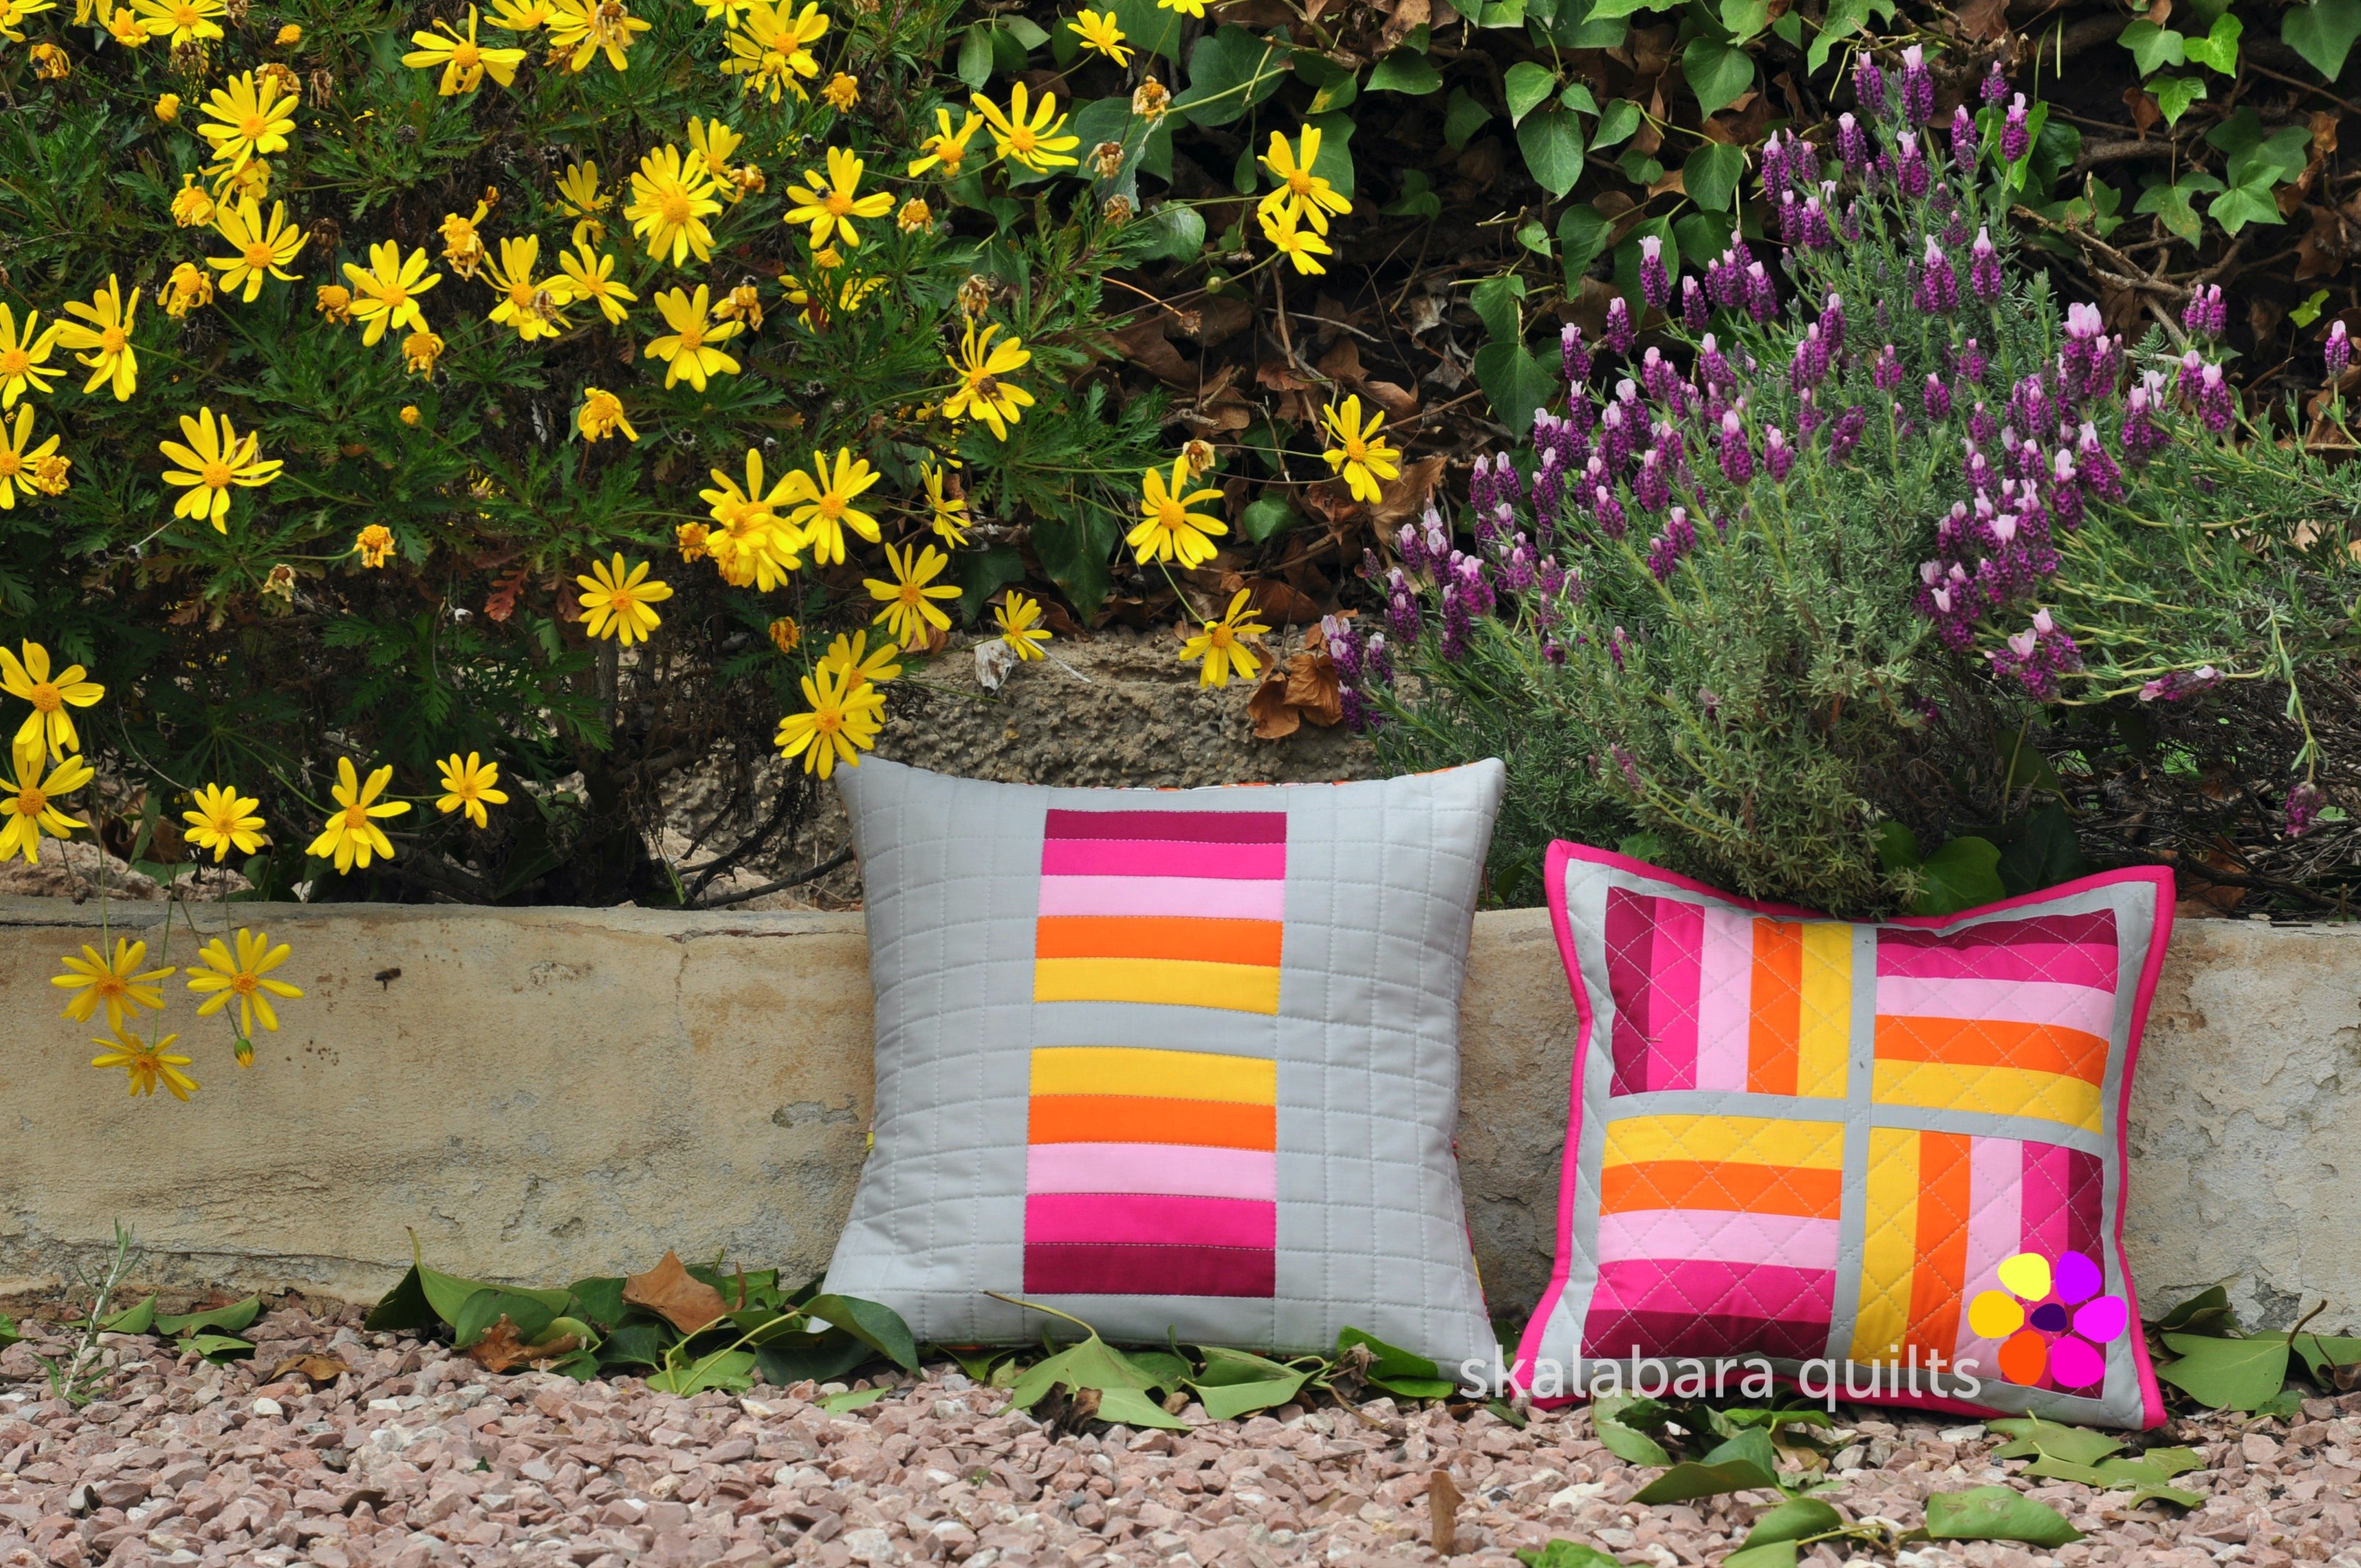 april pinkie cushions 1 - skalabara quilts